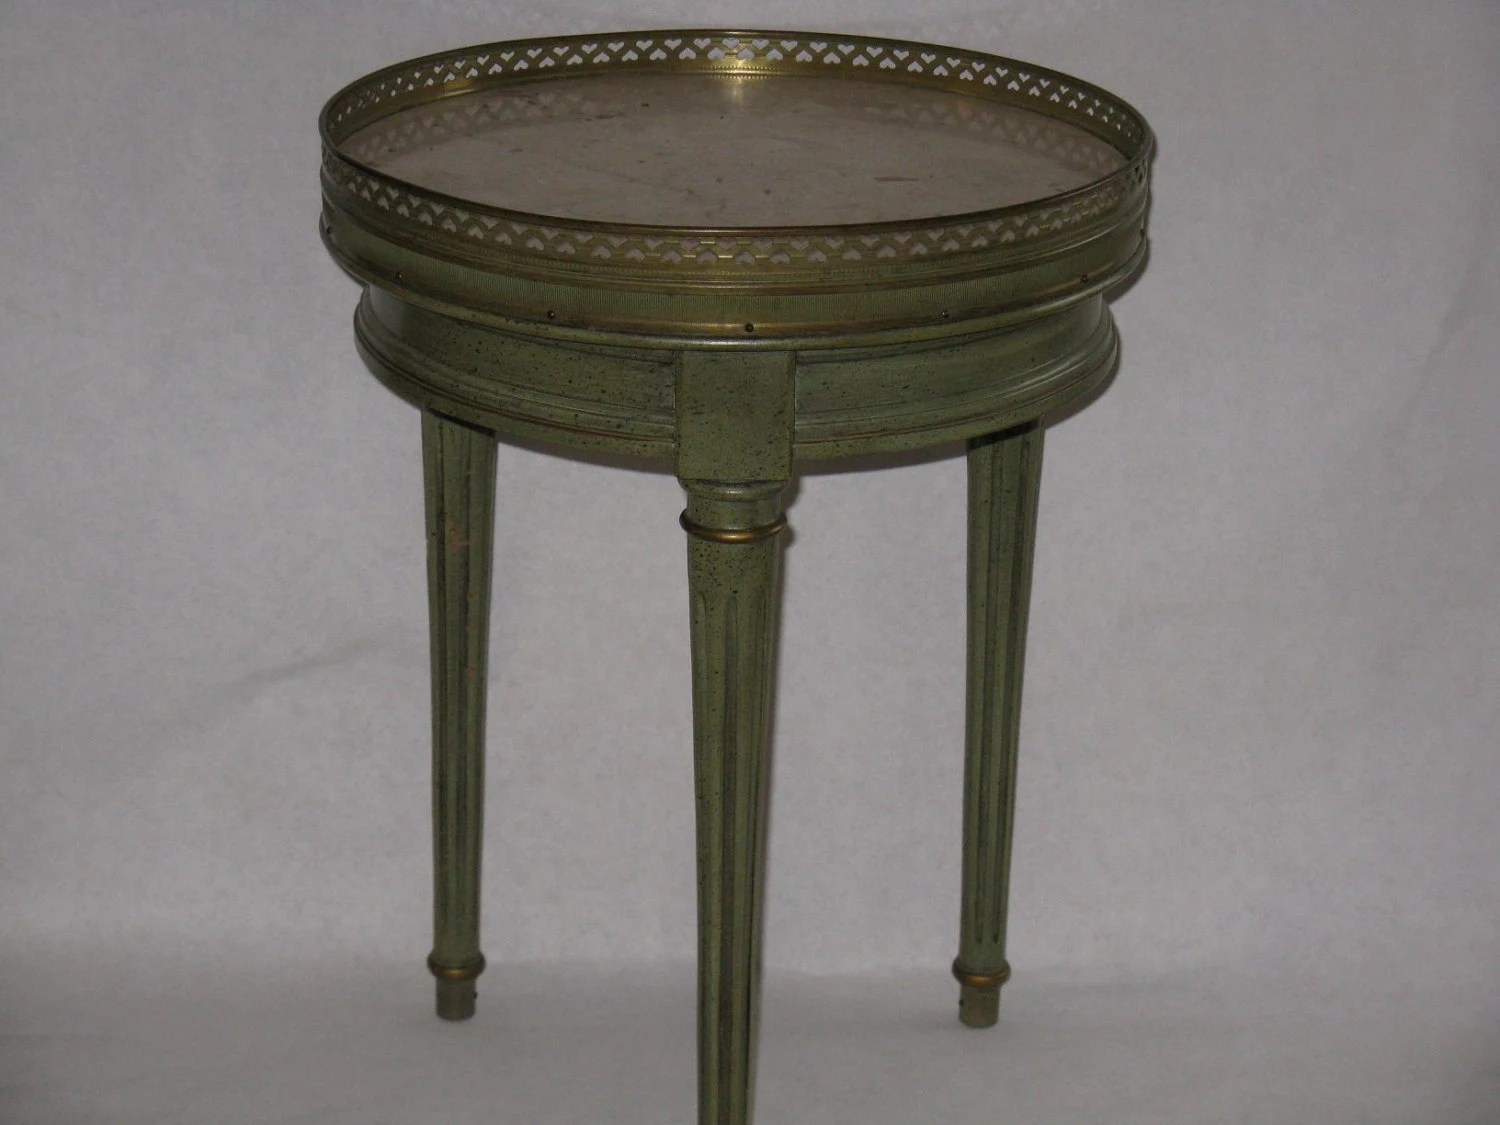 Vintage Brandt Accent Table Green Wood Marble Top Brass